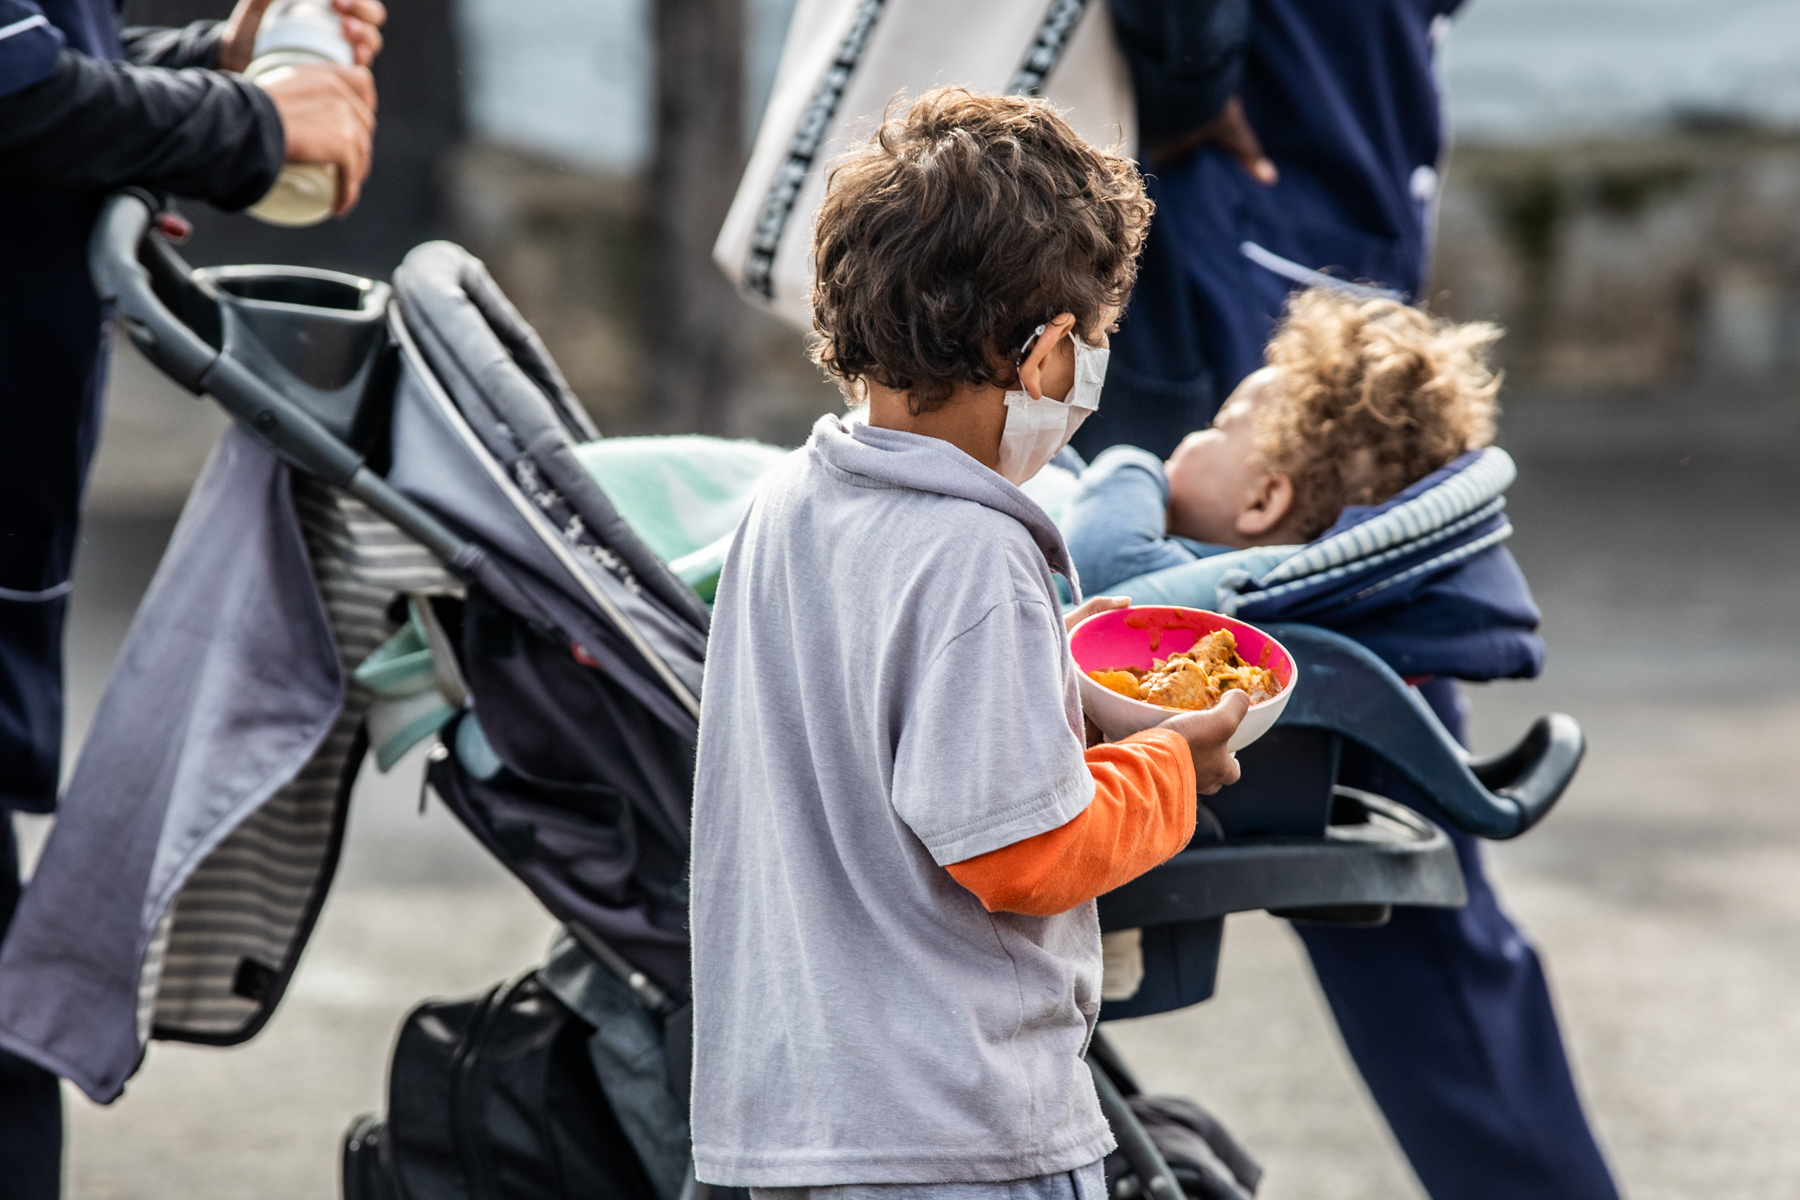 A boy holds a bowl of food as he walks next to a baby in a stroller